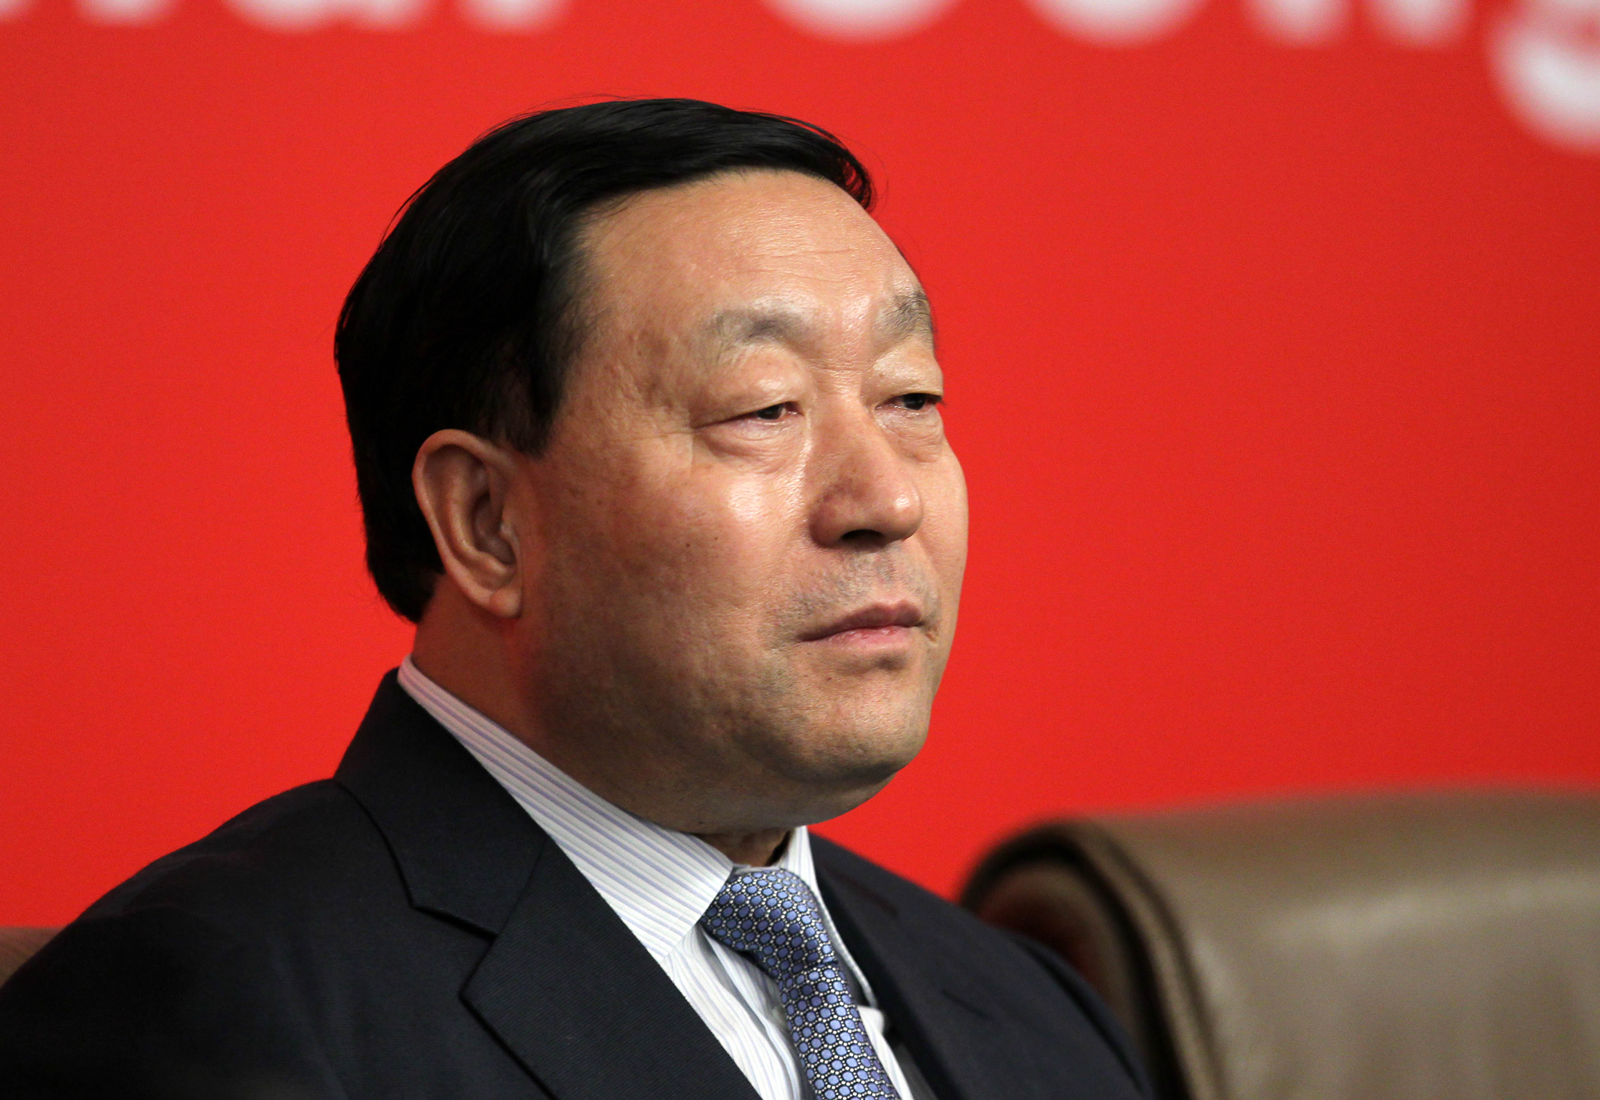 Liu Zhenya, entonces presidente de la State Grid Corporation of China, en una conferencia de prensa en Beijing en 2012.